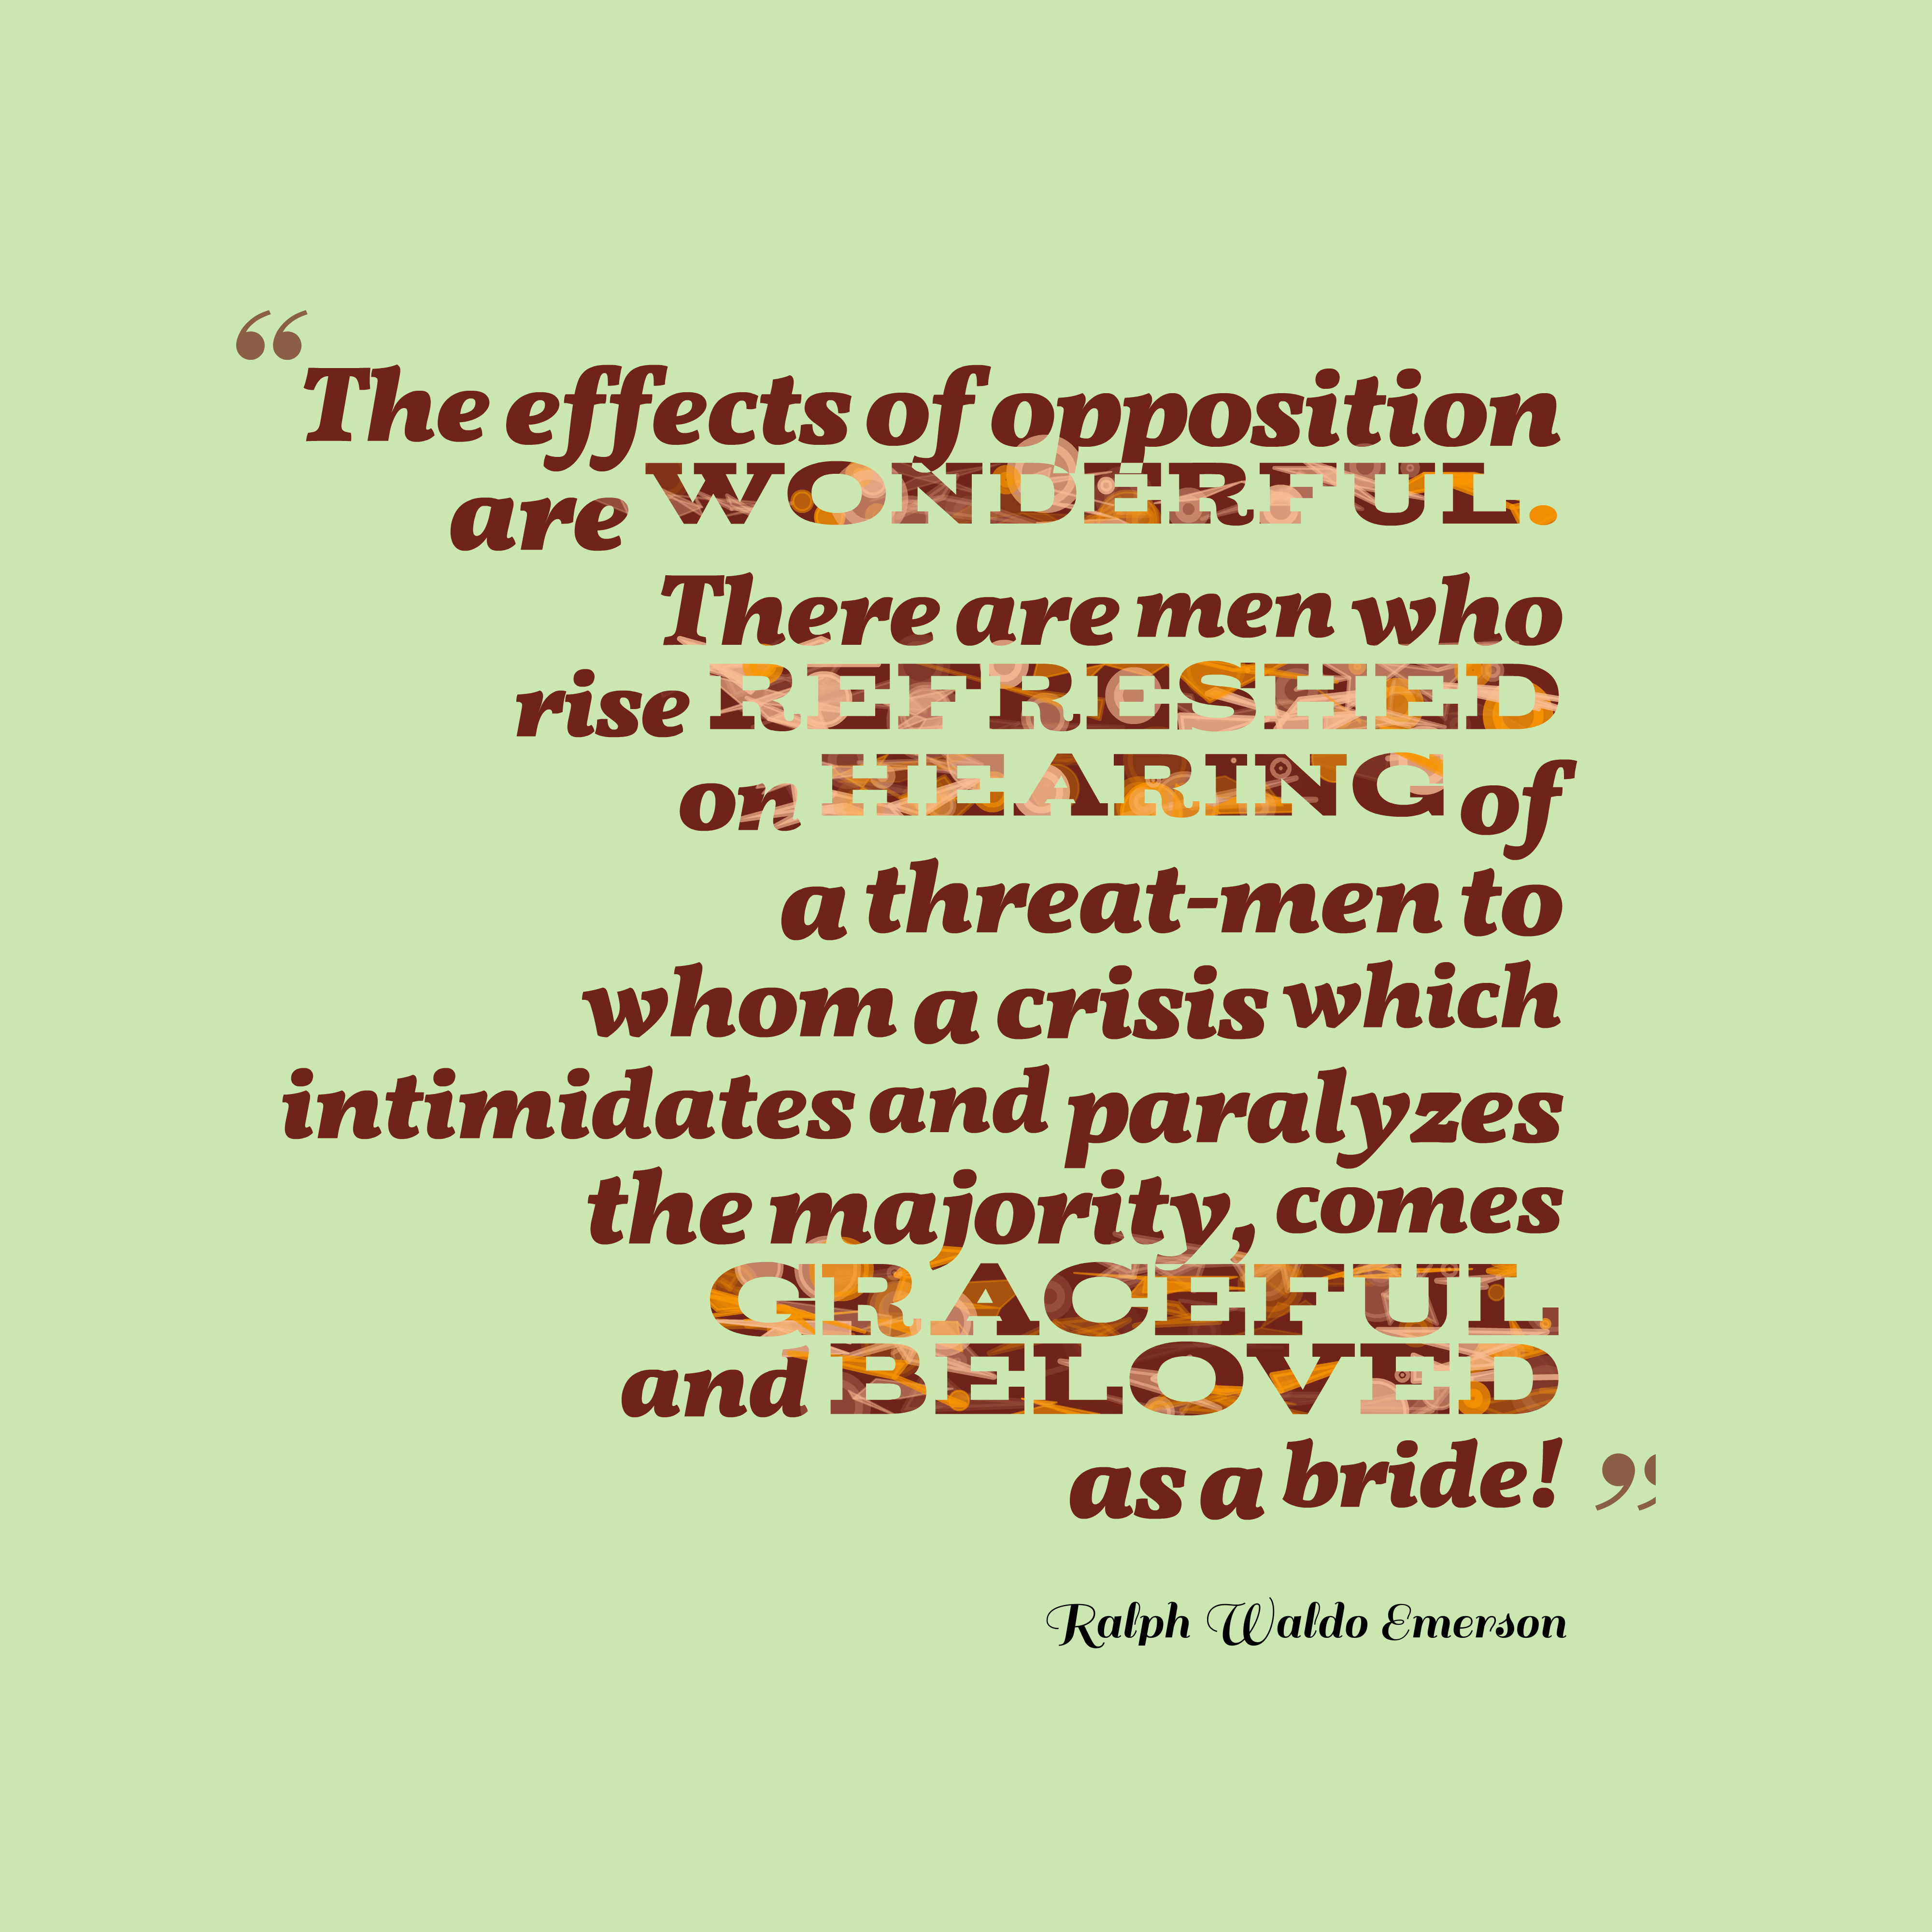 Quotes image of The effects of opposition are wonderful. There are men who rise refreshed on hearing of a threat-men to whom a crisis which intimidates and paralyzes the majority, comes graceful and beloved as a bride!